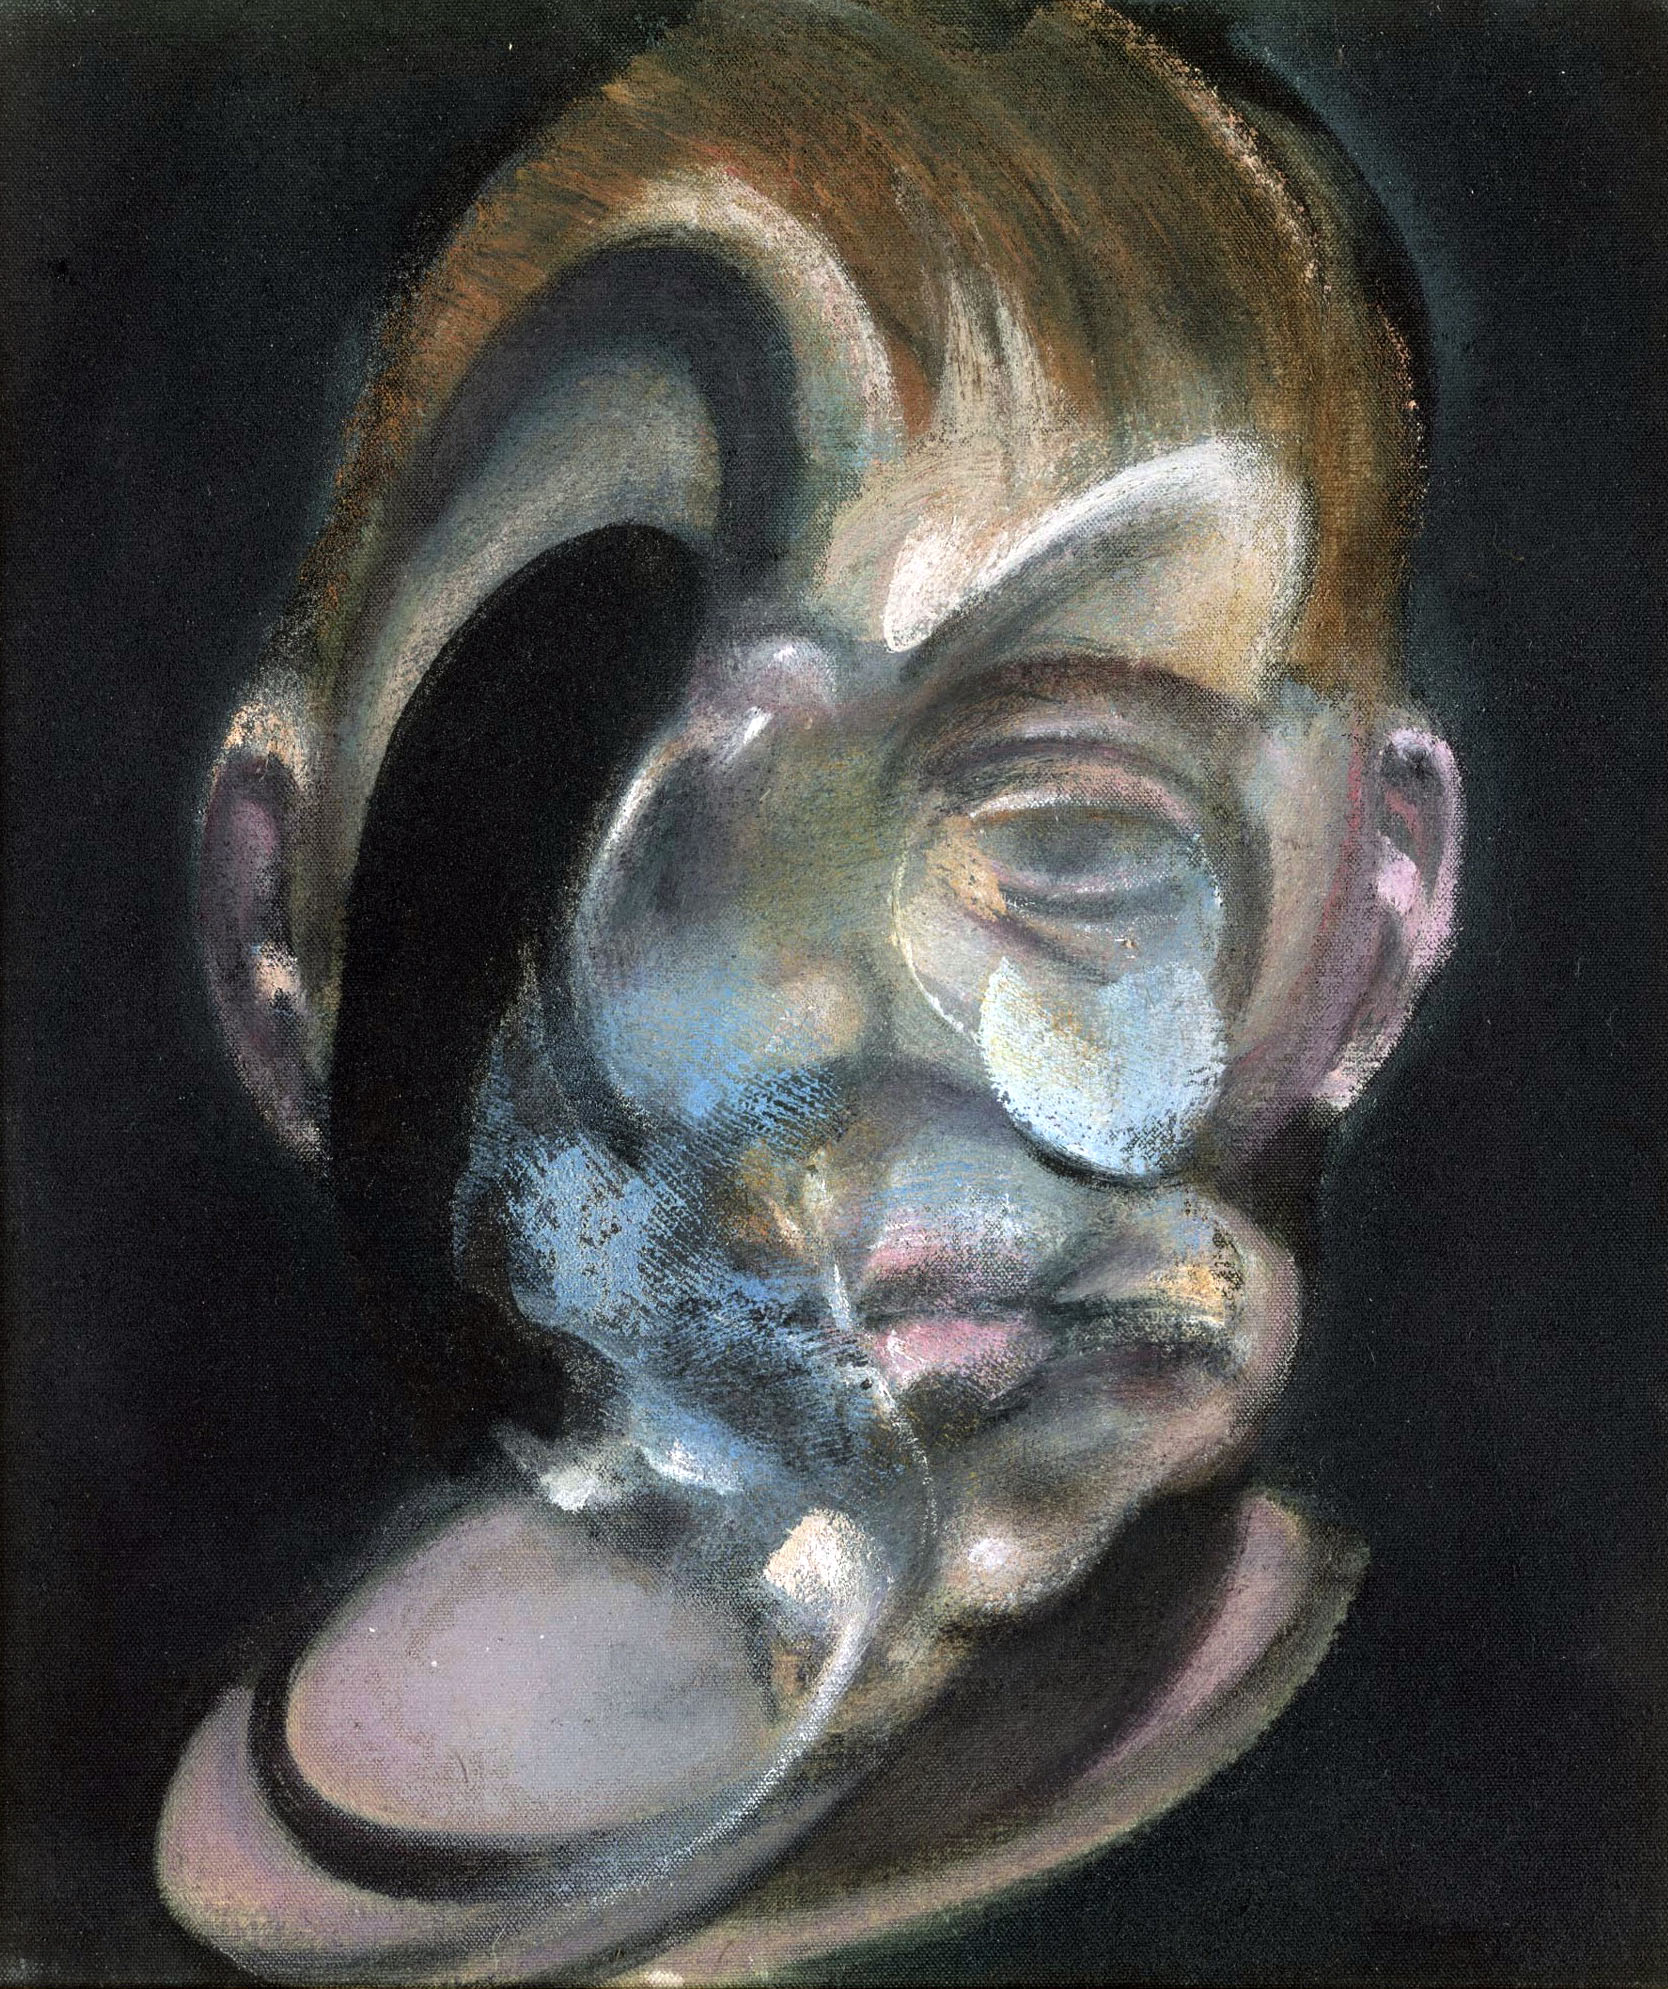 francis bacon the portraits Francis bacon produced some of the most iconic images of wounded and traumatized humanity in post-war art borrowing inspiration from surrealism, film, photography, and the old masters, he forged a distinctive style that made him one of the most widely recognized exponents of figurative art in the 1940s and 1950s.